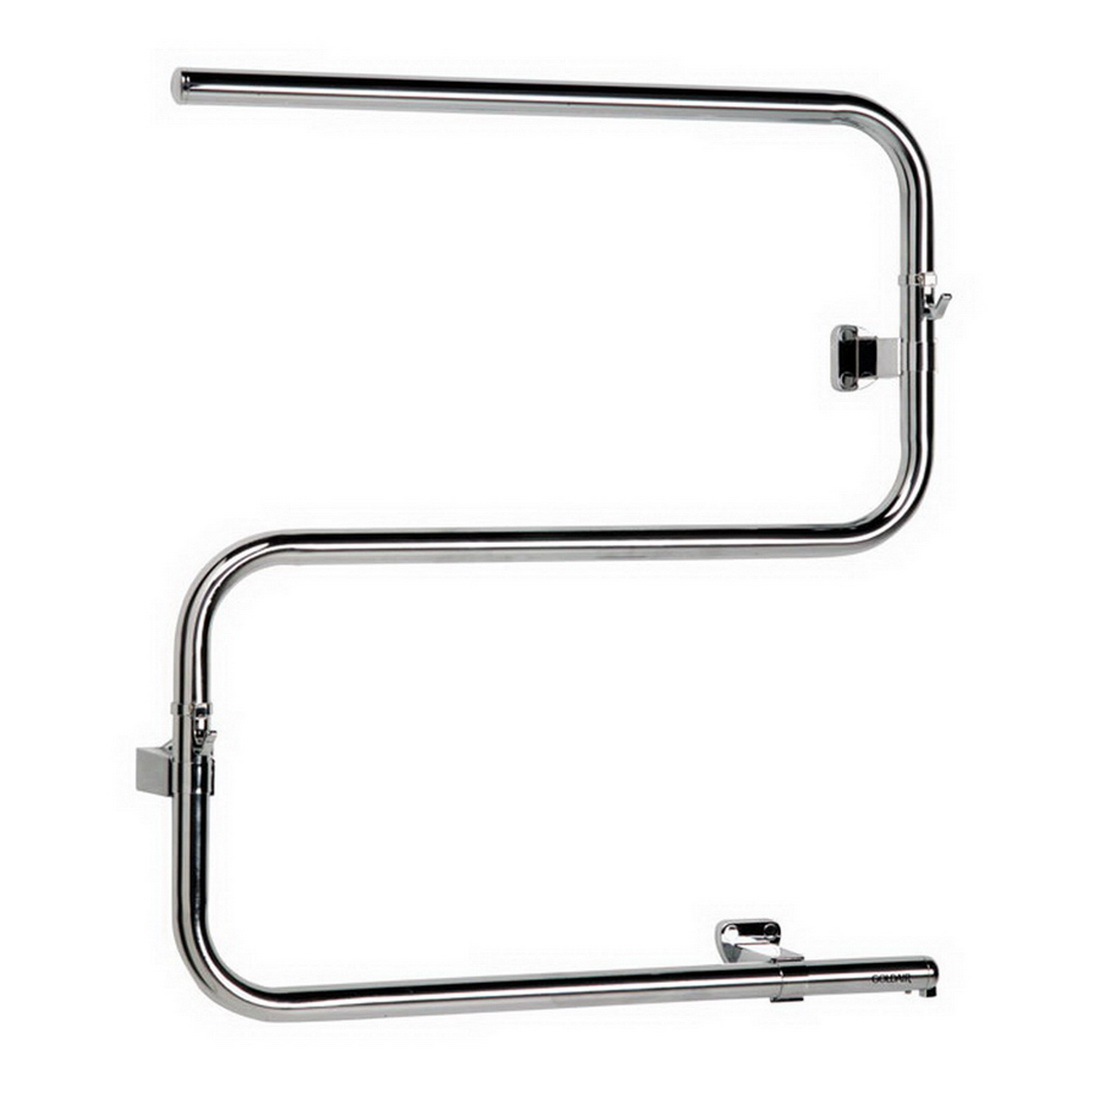 Goldair Medium Heated T-Rail Mid Size Towel Rail 615 x 575 mm Chrome Stainless Steel GTRMC